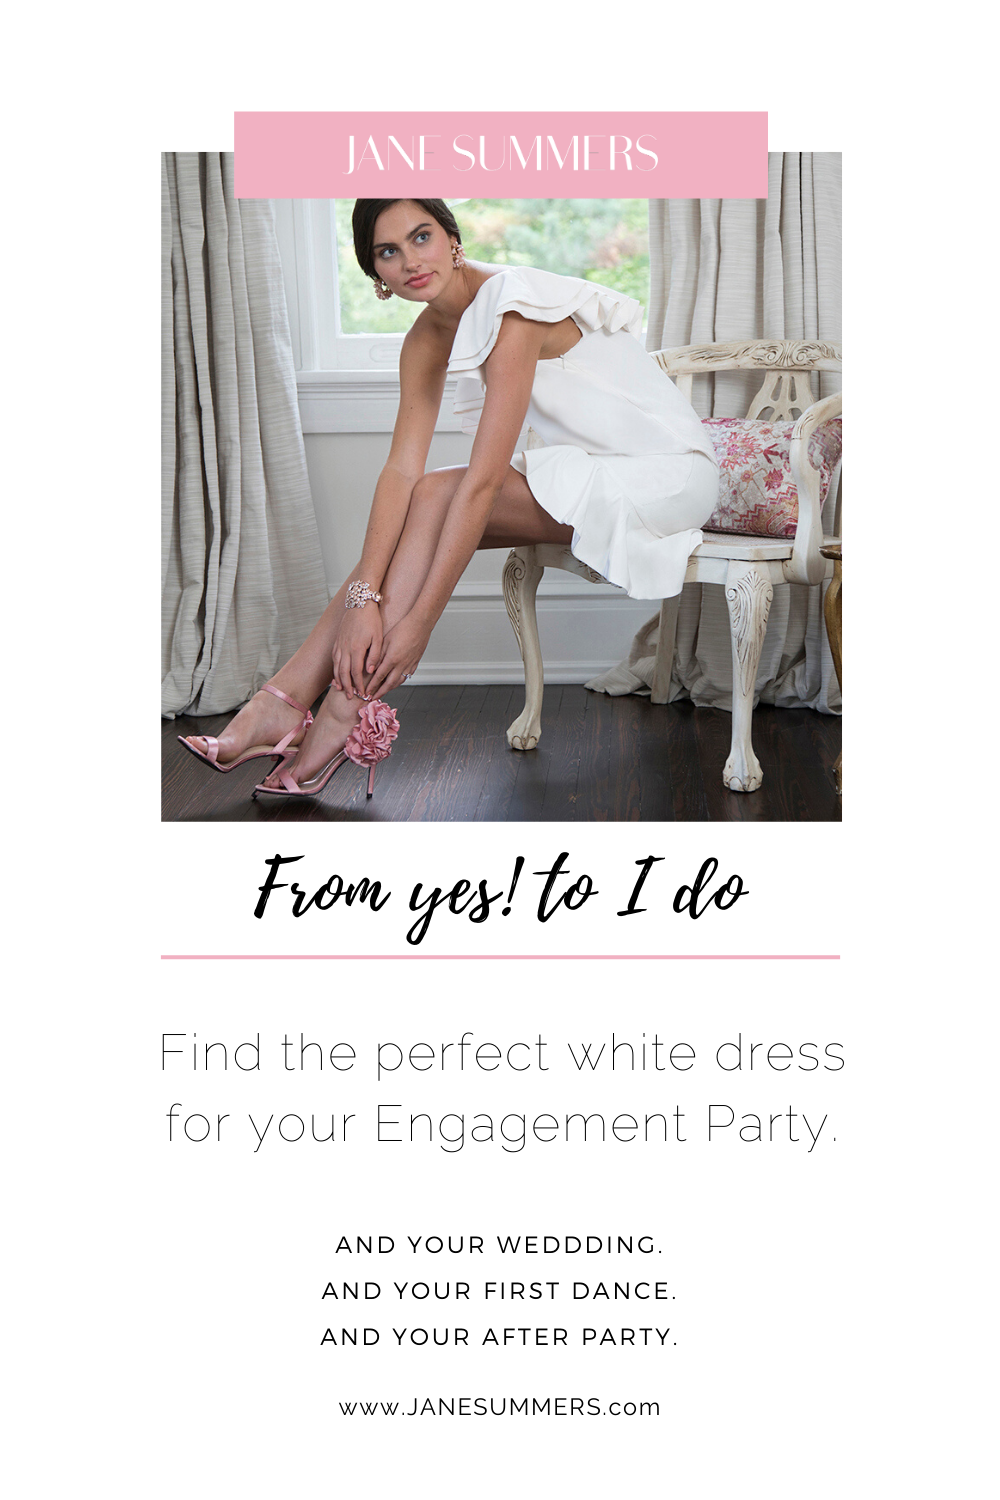 Say Yes To Unbelievably Gorgeous Wedding Reception Dresses & Unforgettable First Dance Dresses #dressesforengagementparty Looking for a head turning Engagement Party Dress? Shop Jane Summers and find iconic Little White Dresses, first dance dresses and after party dresses. #engagementpartydress #littlewhitedress #firstdancedress #partydress